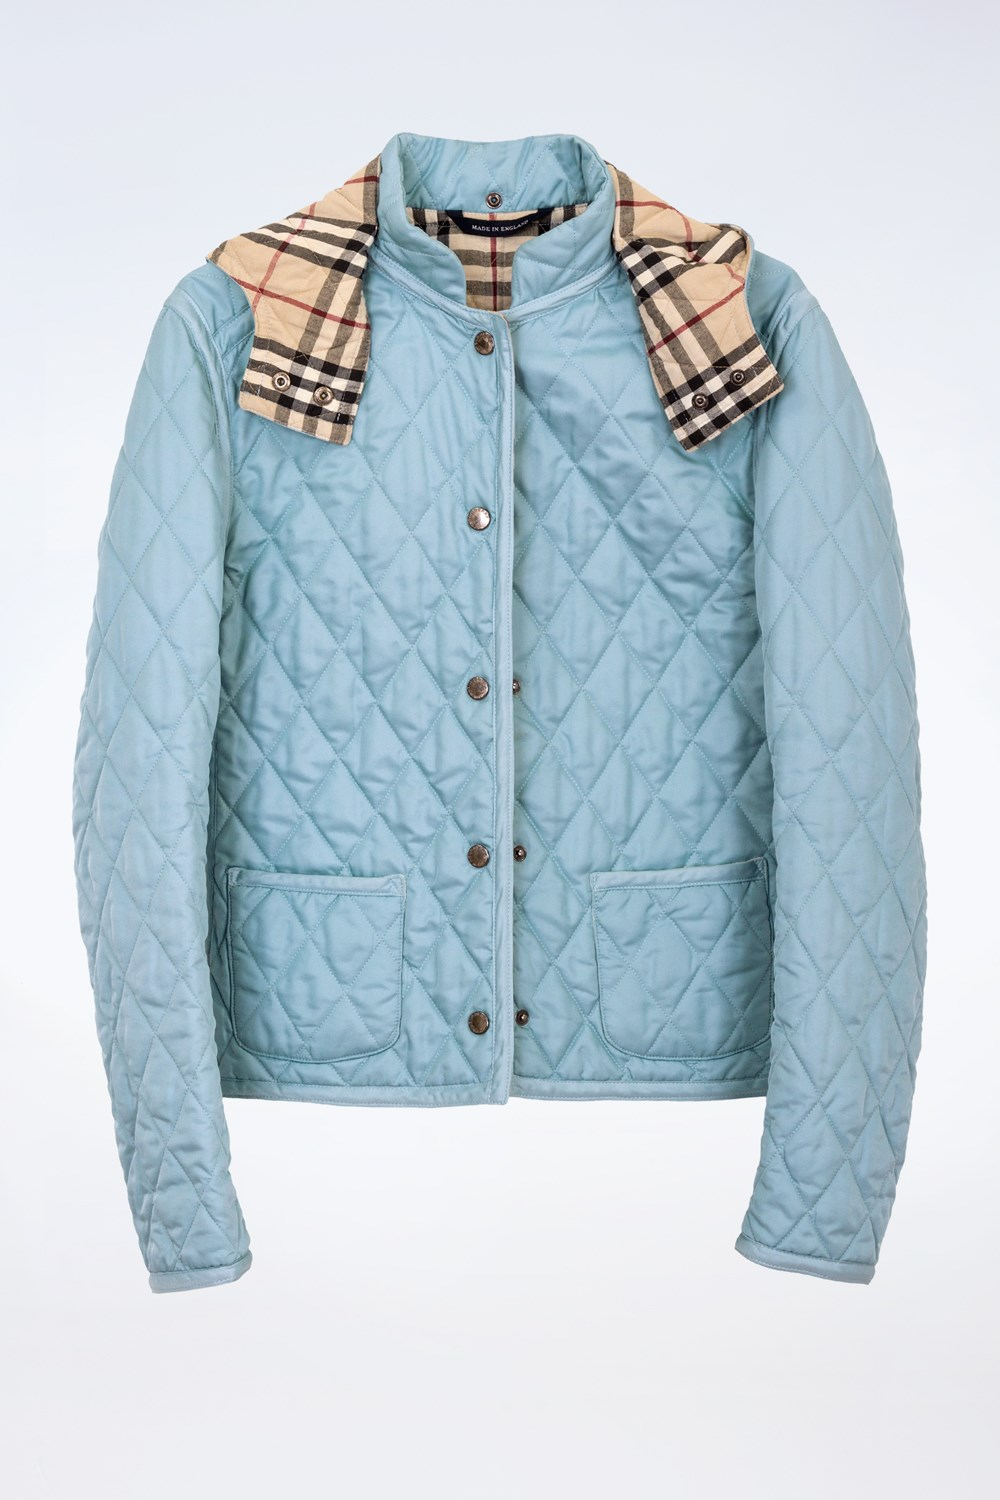 71071dfe49fd2 Light Blue Quilted Lightweight Jacket Size 8 Uk Fit Xs S. Burberry Baby Boys  ...